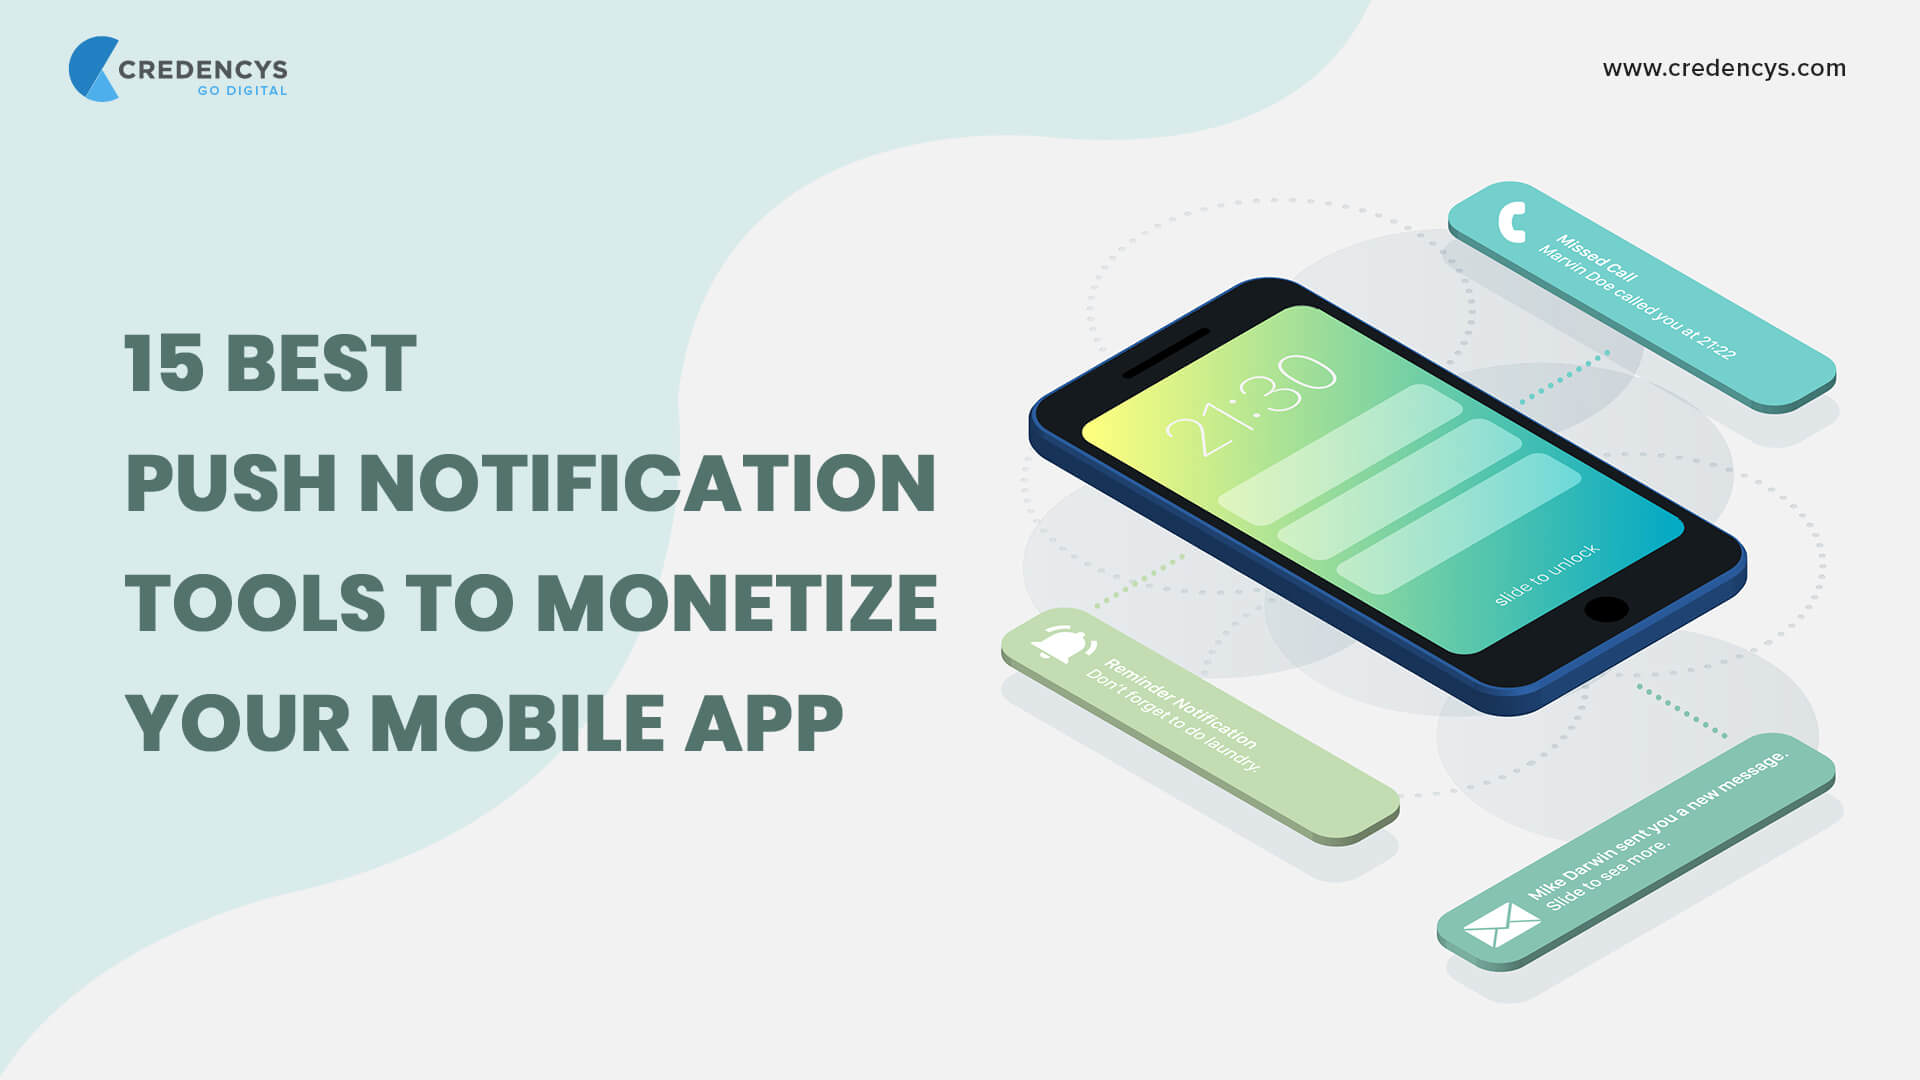 15 Best Push Notification Tools to Monetize your Mobile App